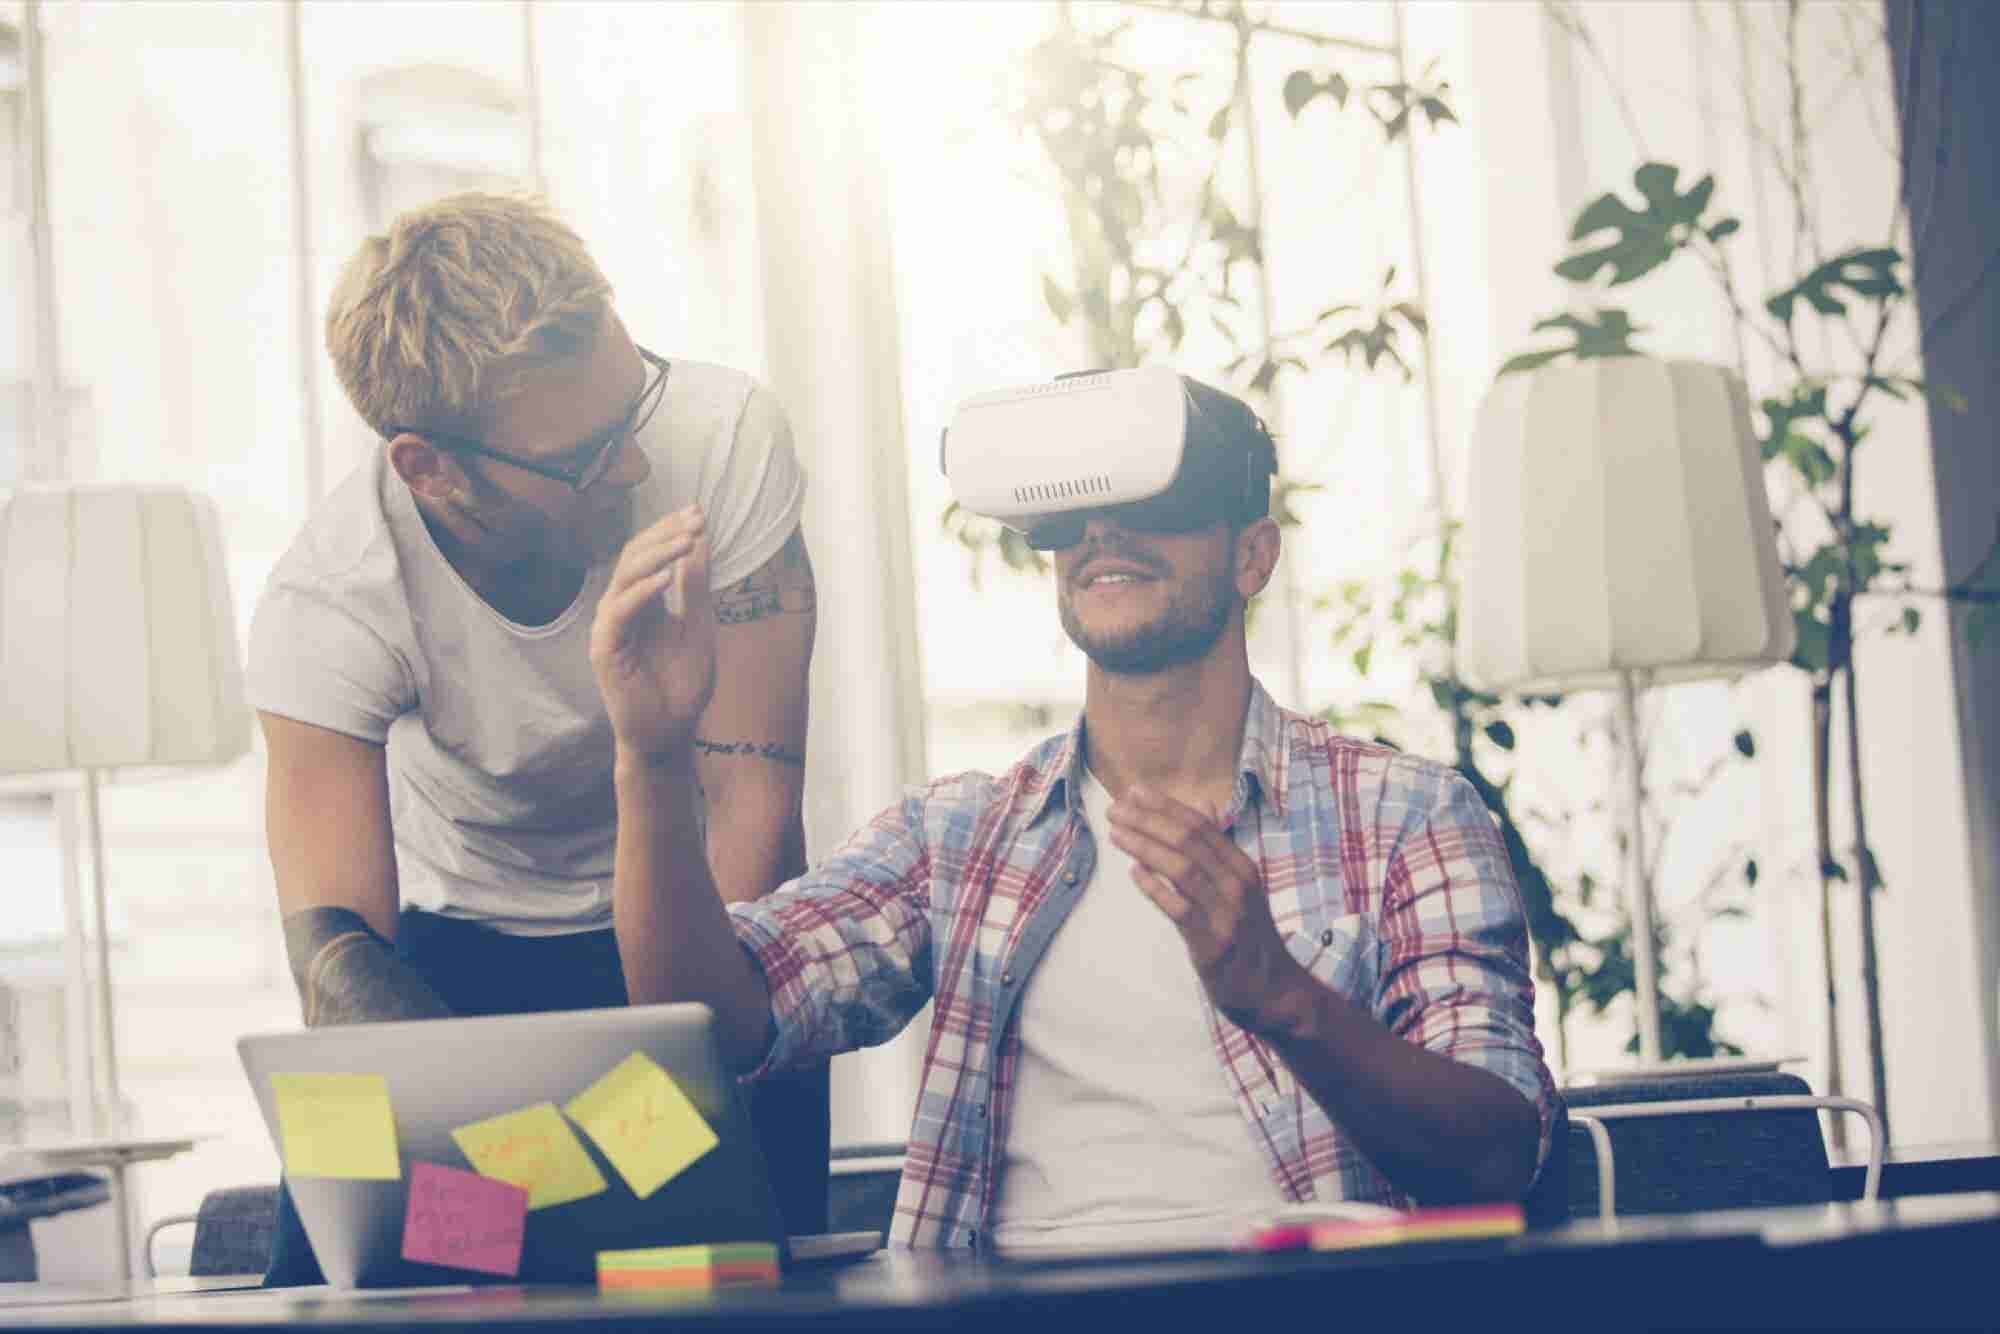 5 Startup Ideas For Jumping Into Virtual Reality